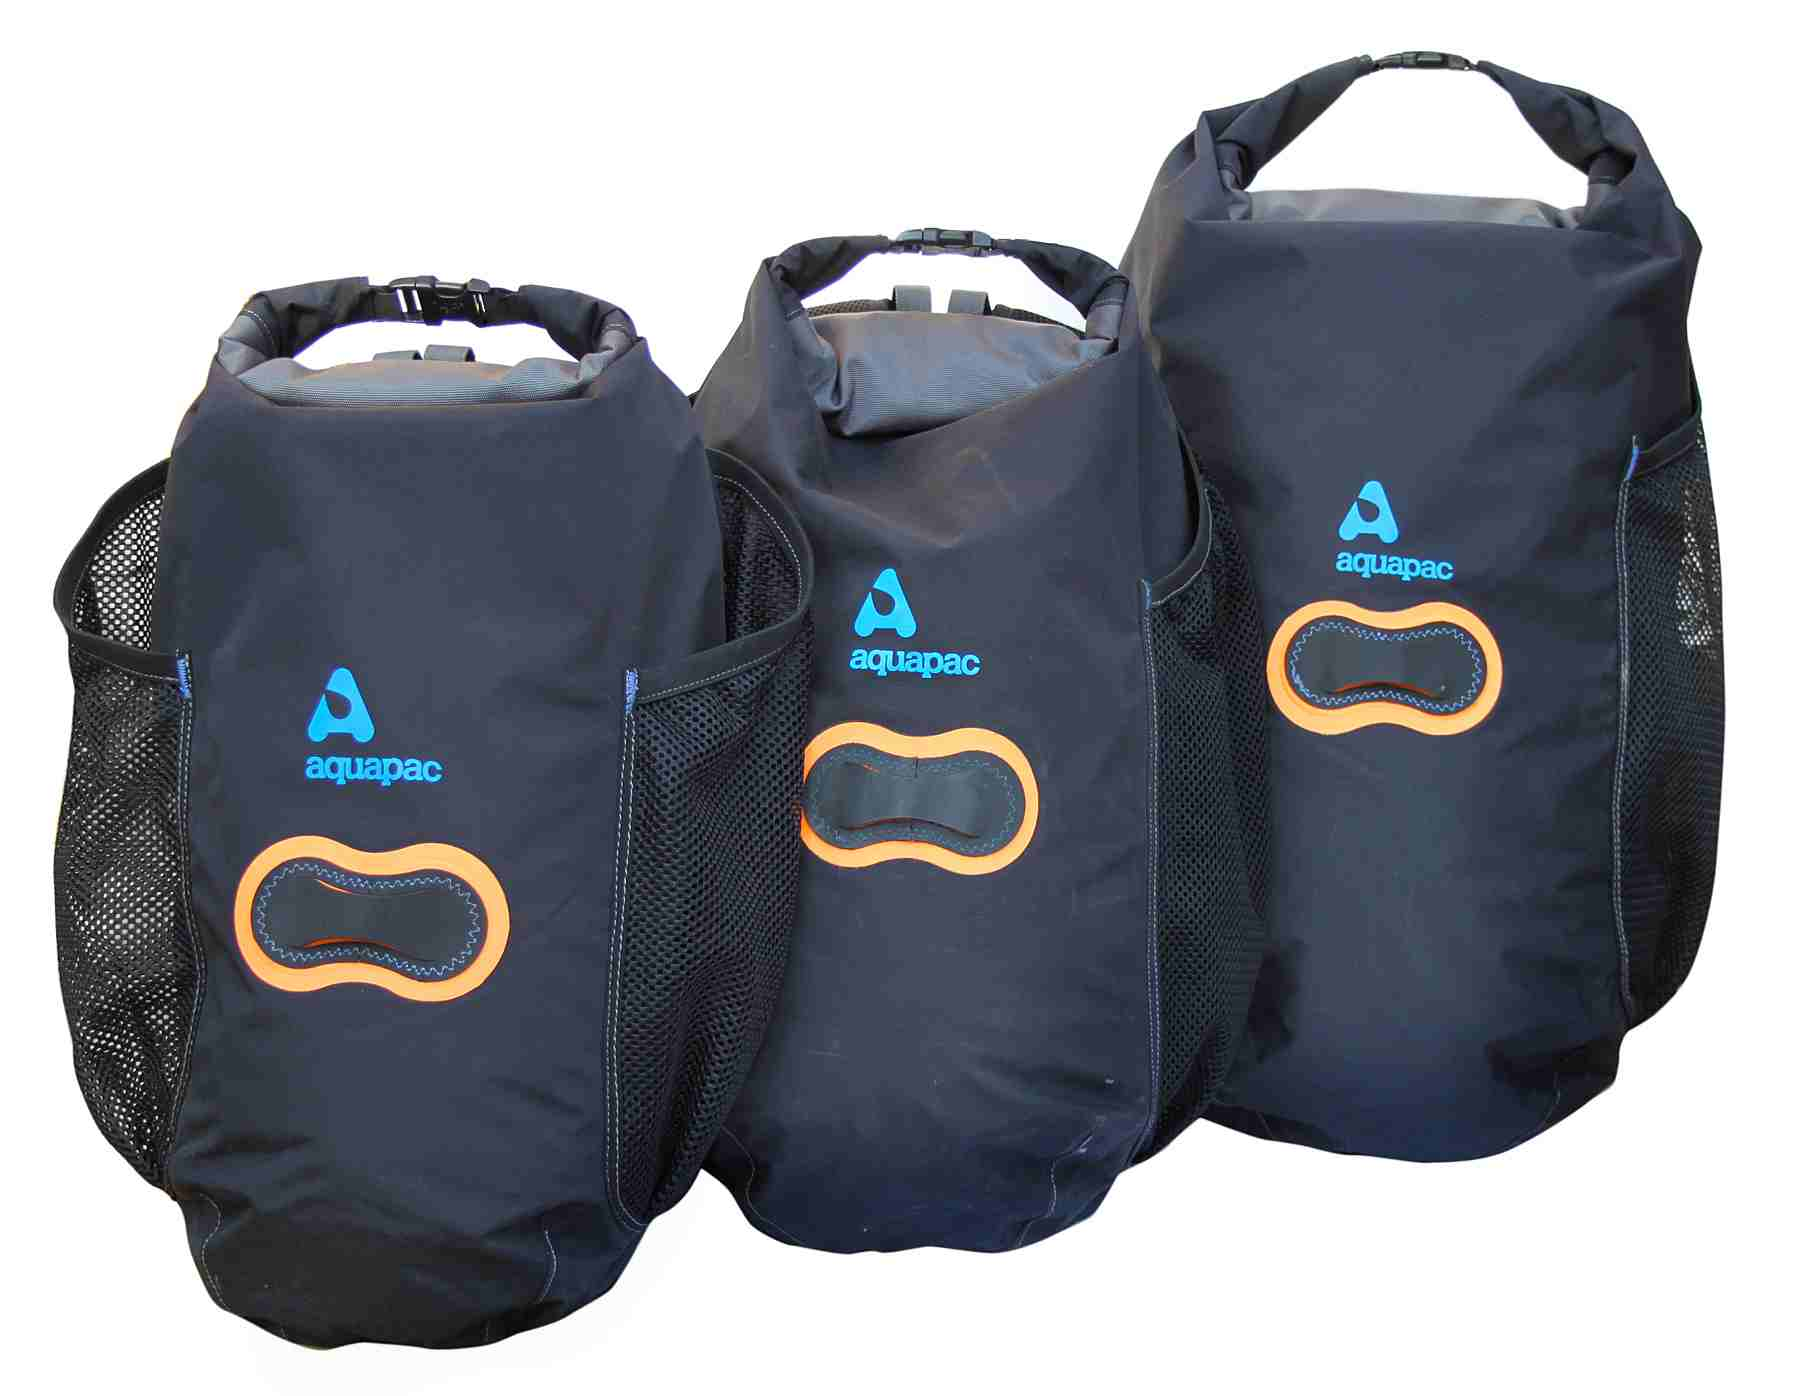 Backpack waterproof: 15, 25 or 35 Liters